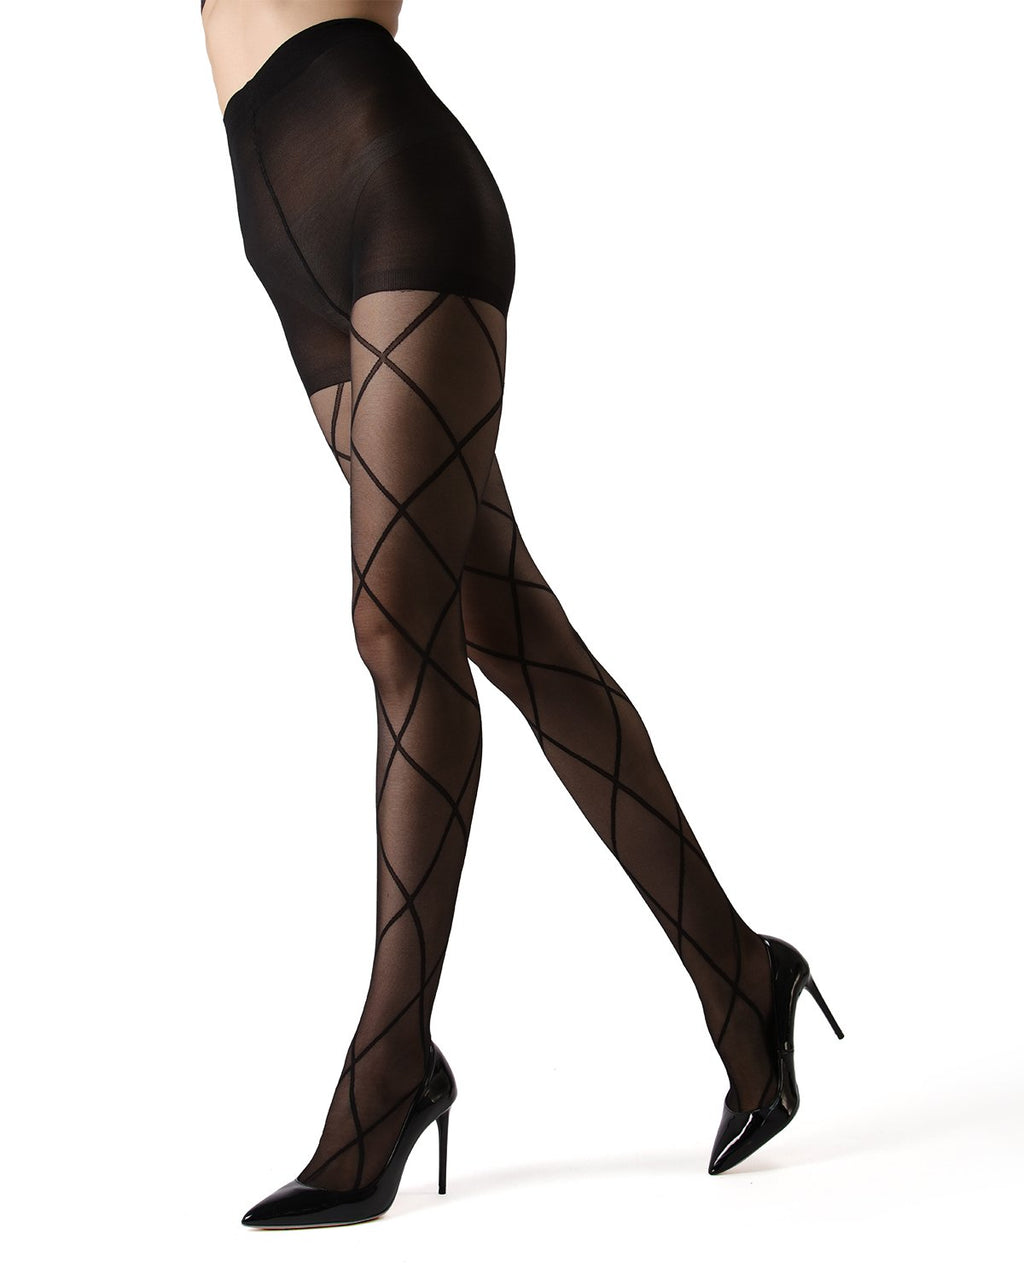 MeMoi | Black/Black Antwerp Sheer Diamond Tights | Women's Tights